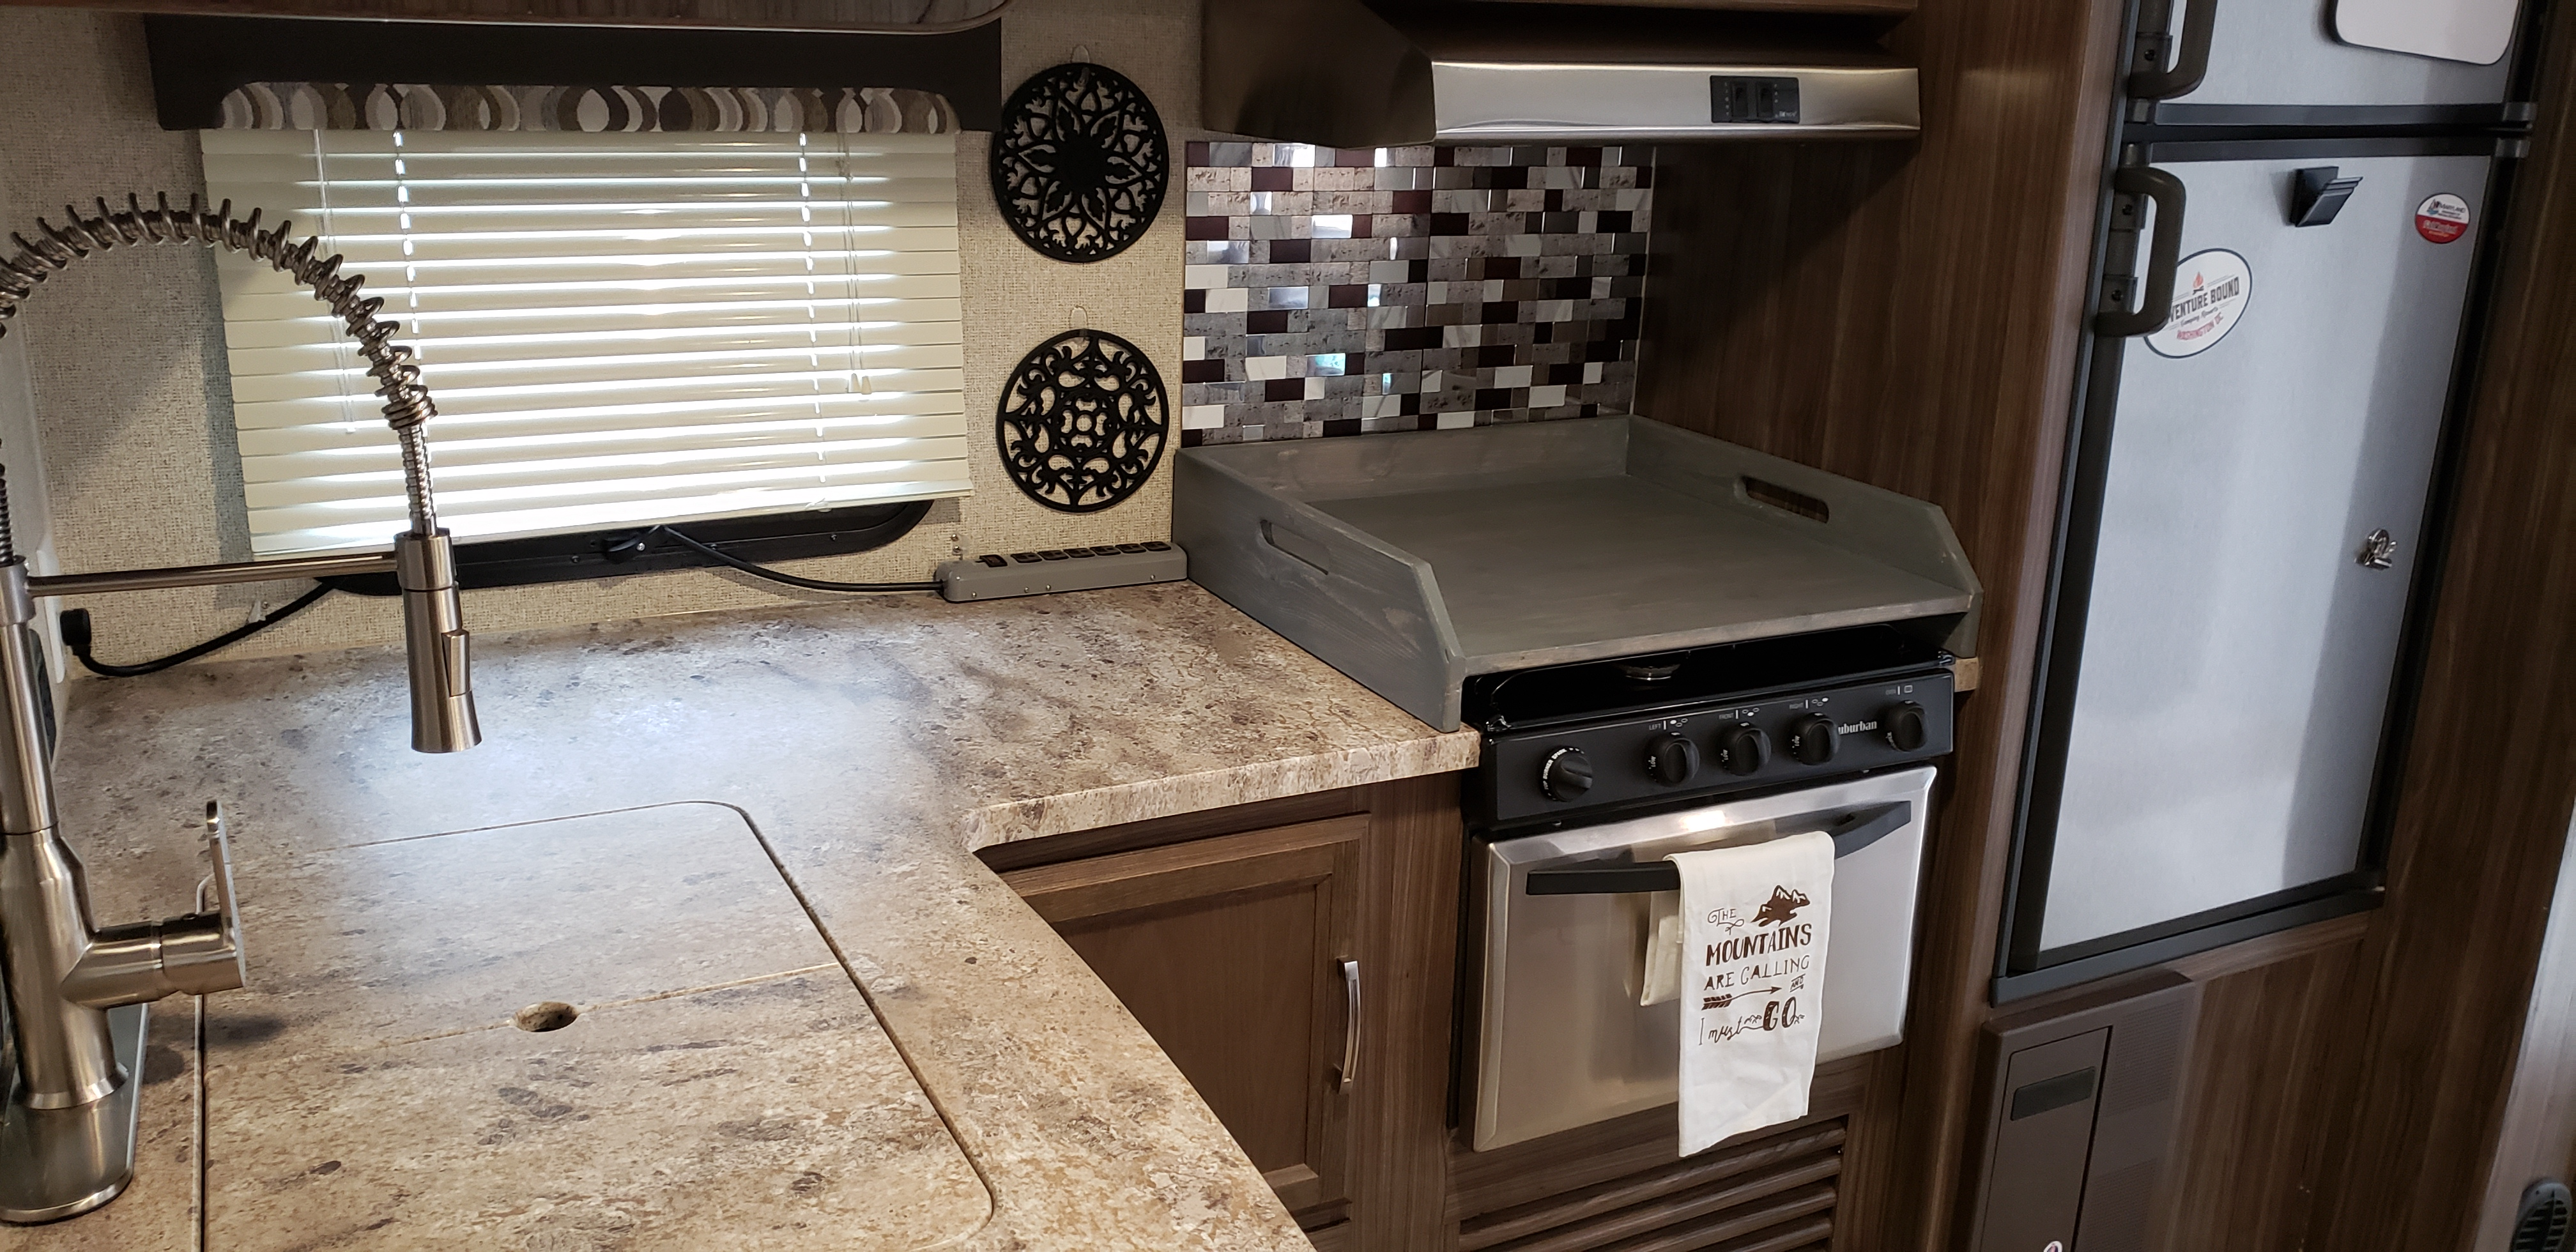 Cover over stove to increase counter space . Coachmen Apex 265rbss 2019